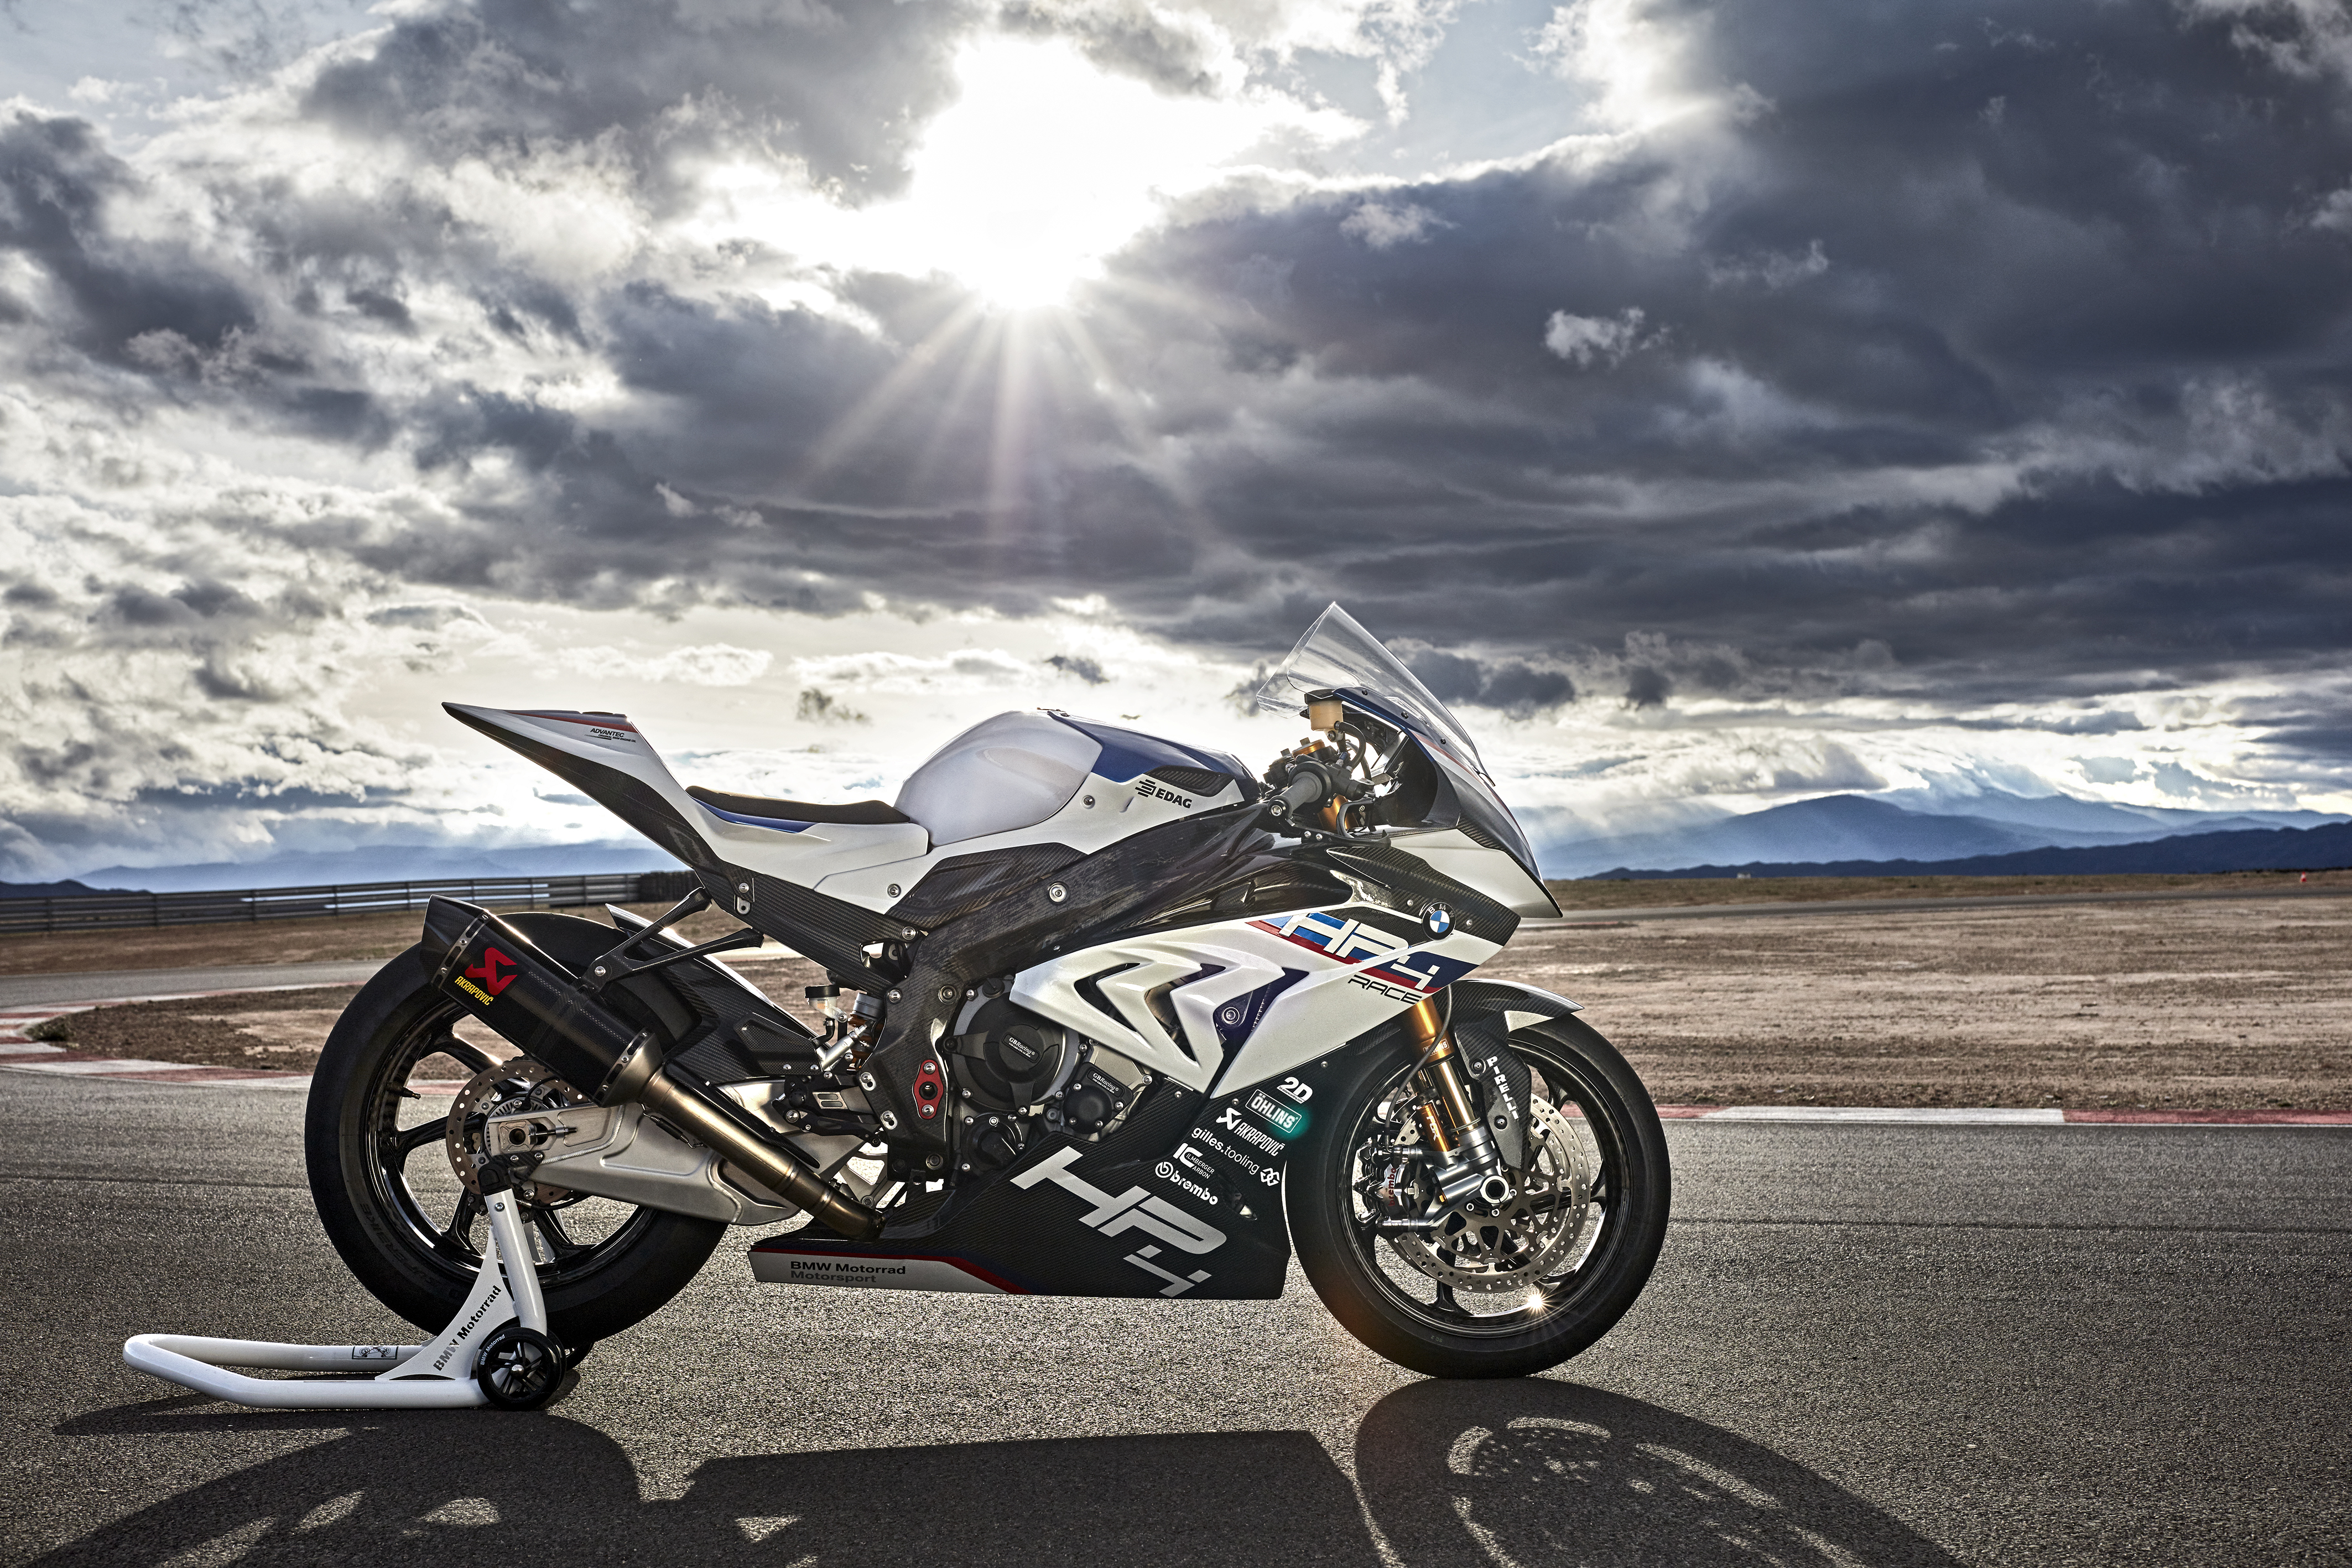 Official Prices Of Bmw Motorcycles With 0 Gst Bikesrepublic